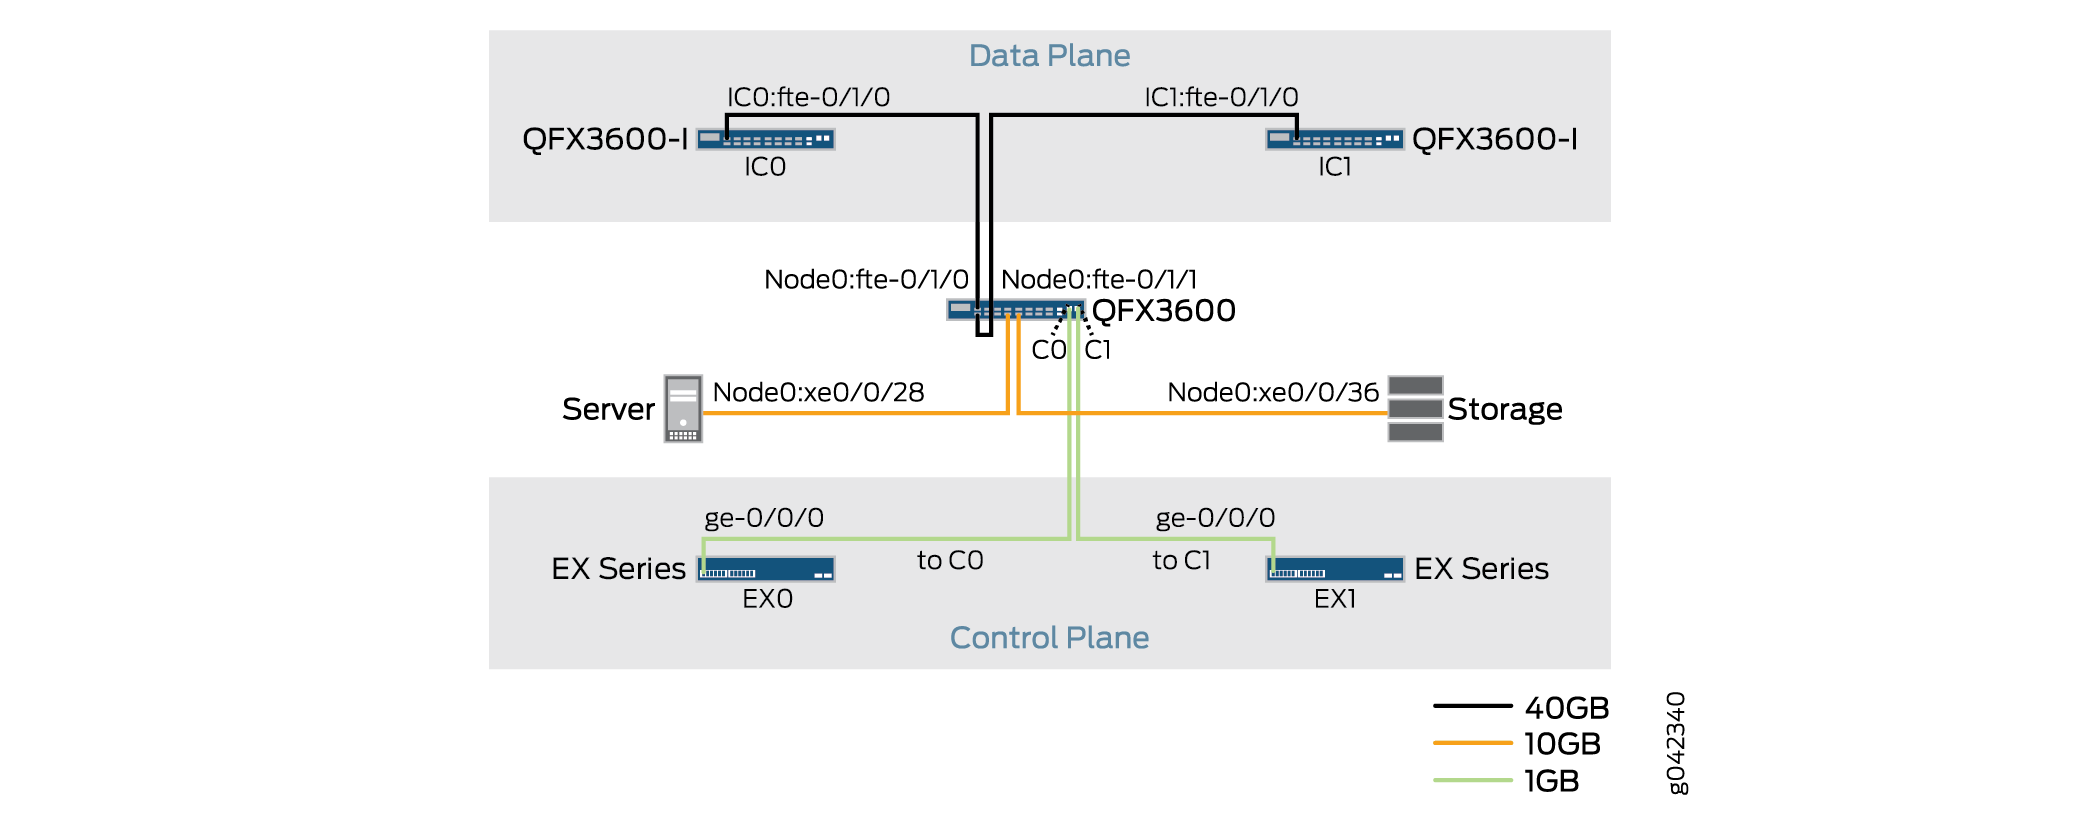 QFX3600 Data Plane and Control Plane Connections